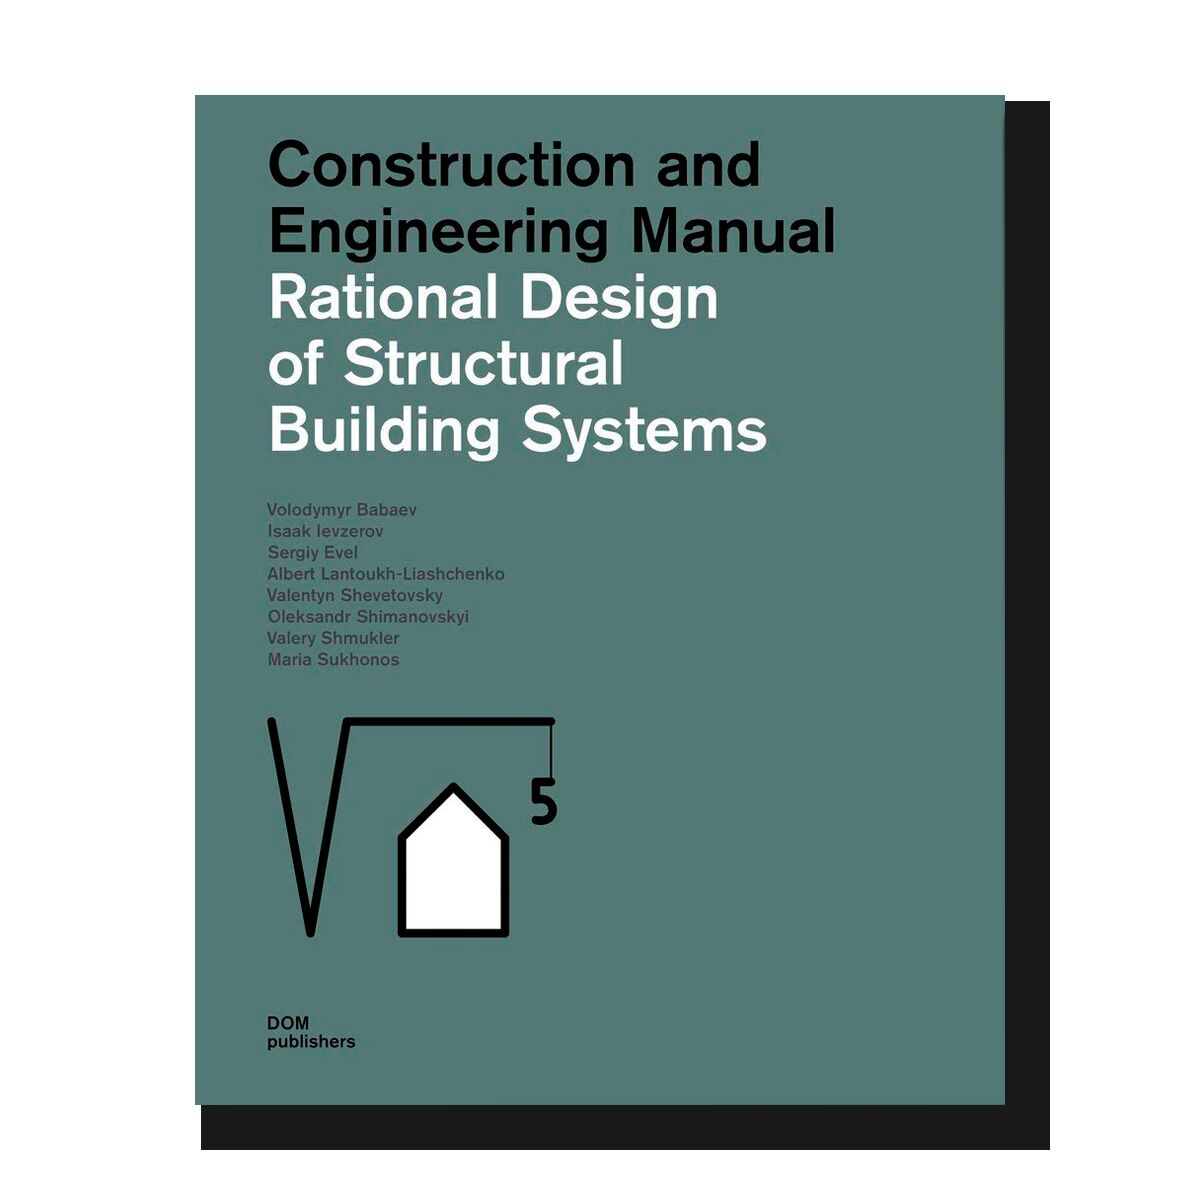 Rational Design of Structural Building Systems: Construction and Engineering Manual